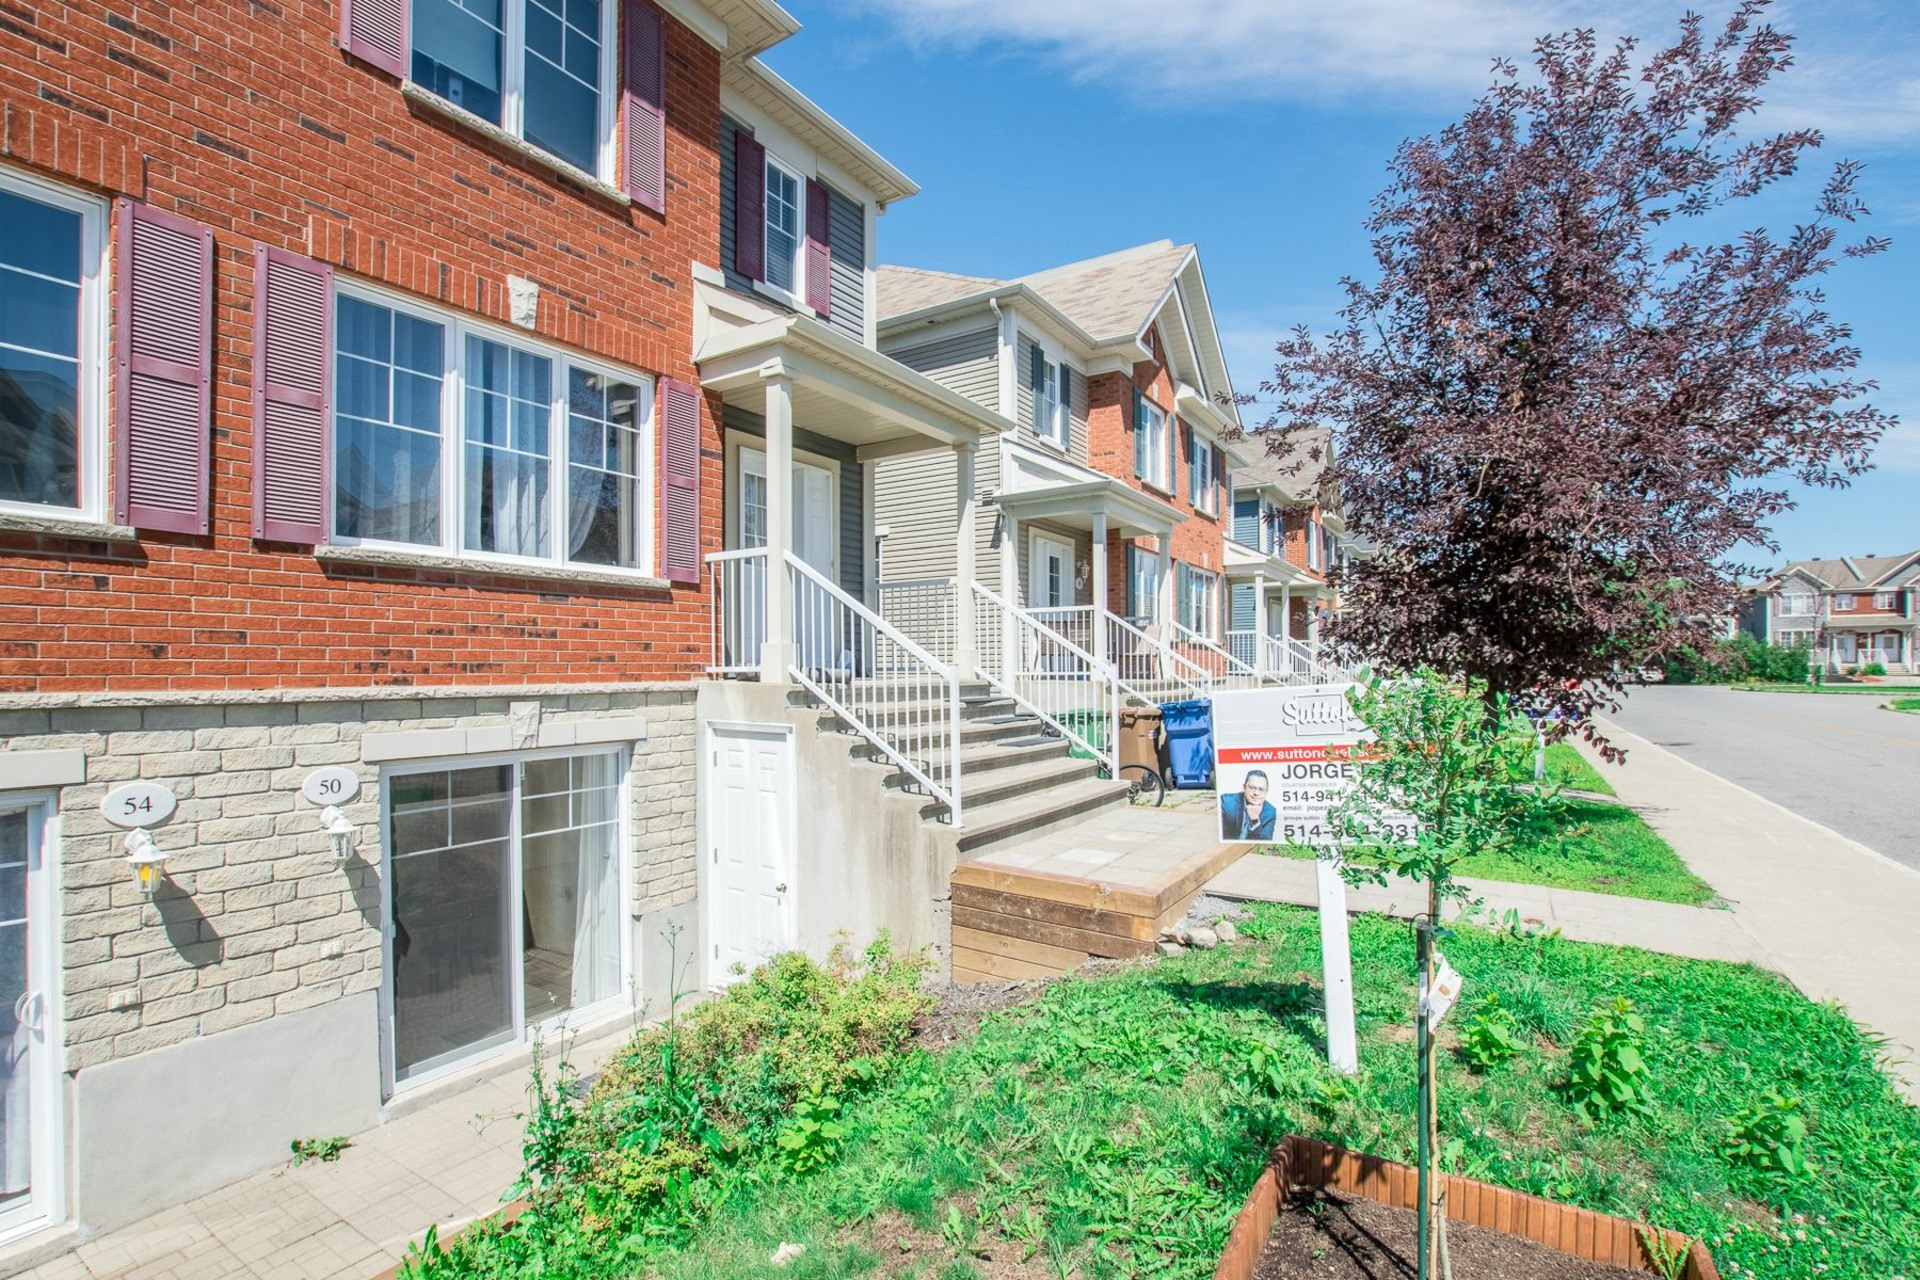 image 14 - Apartment For sale Châteauguay - 4 rooms